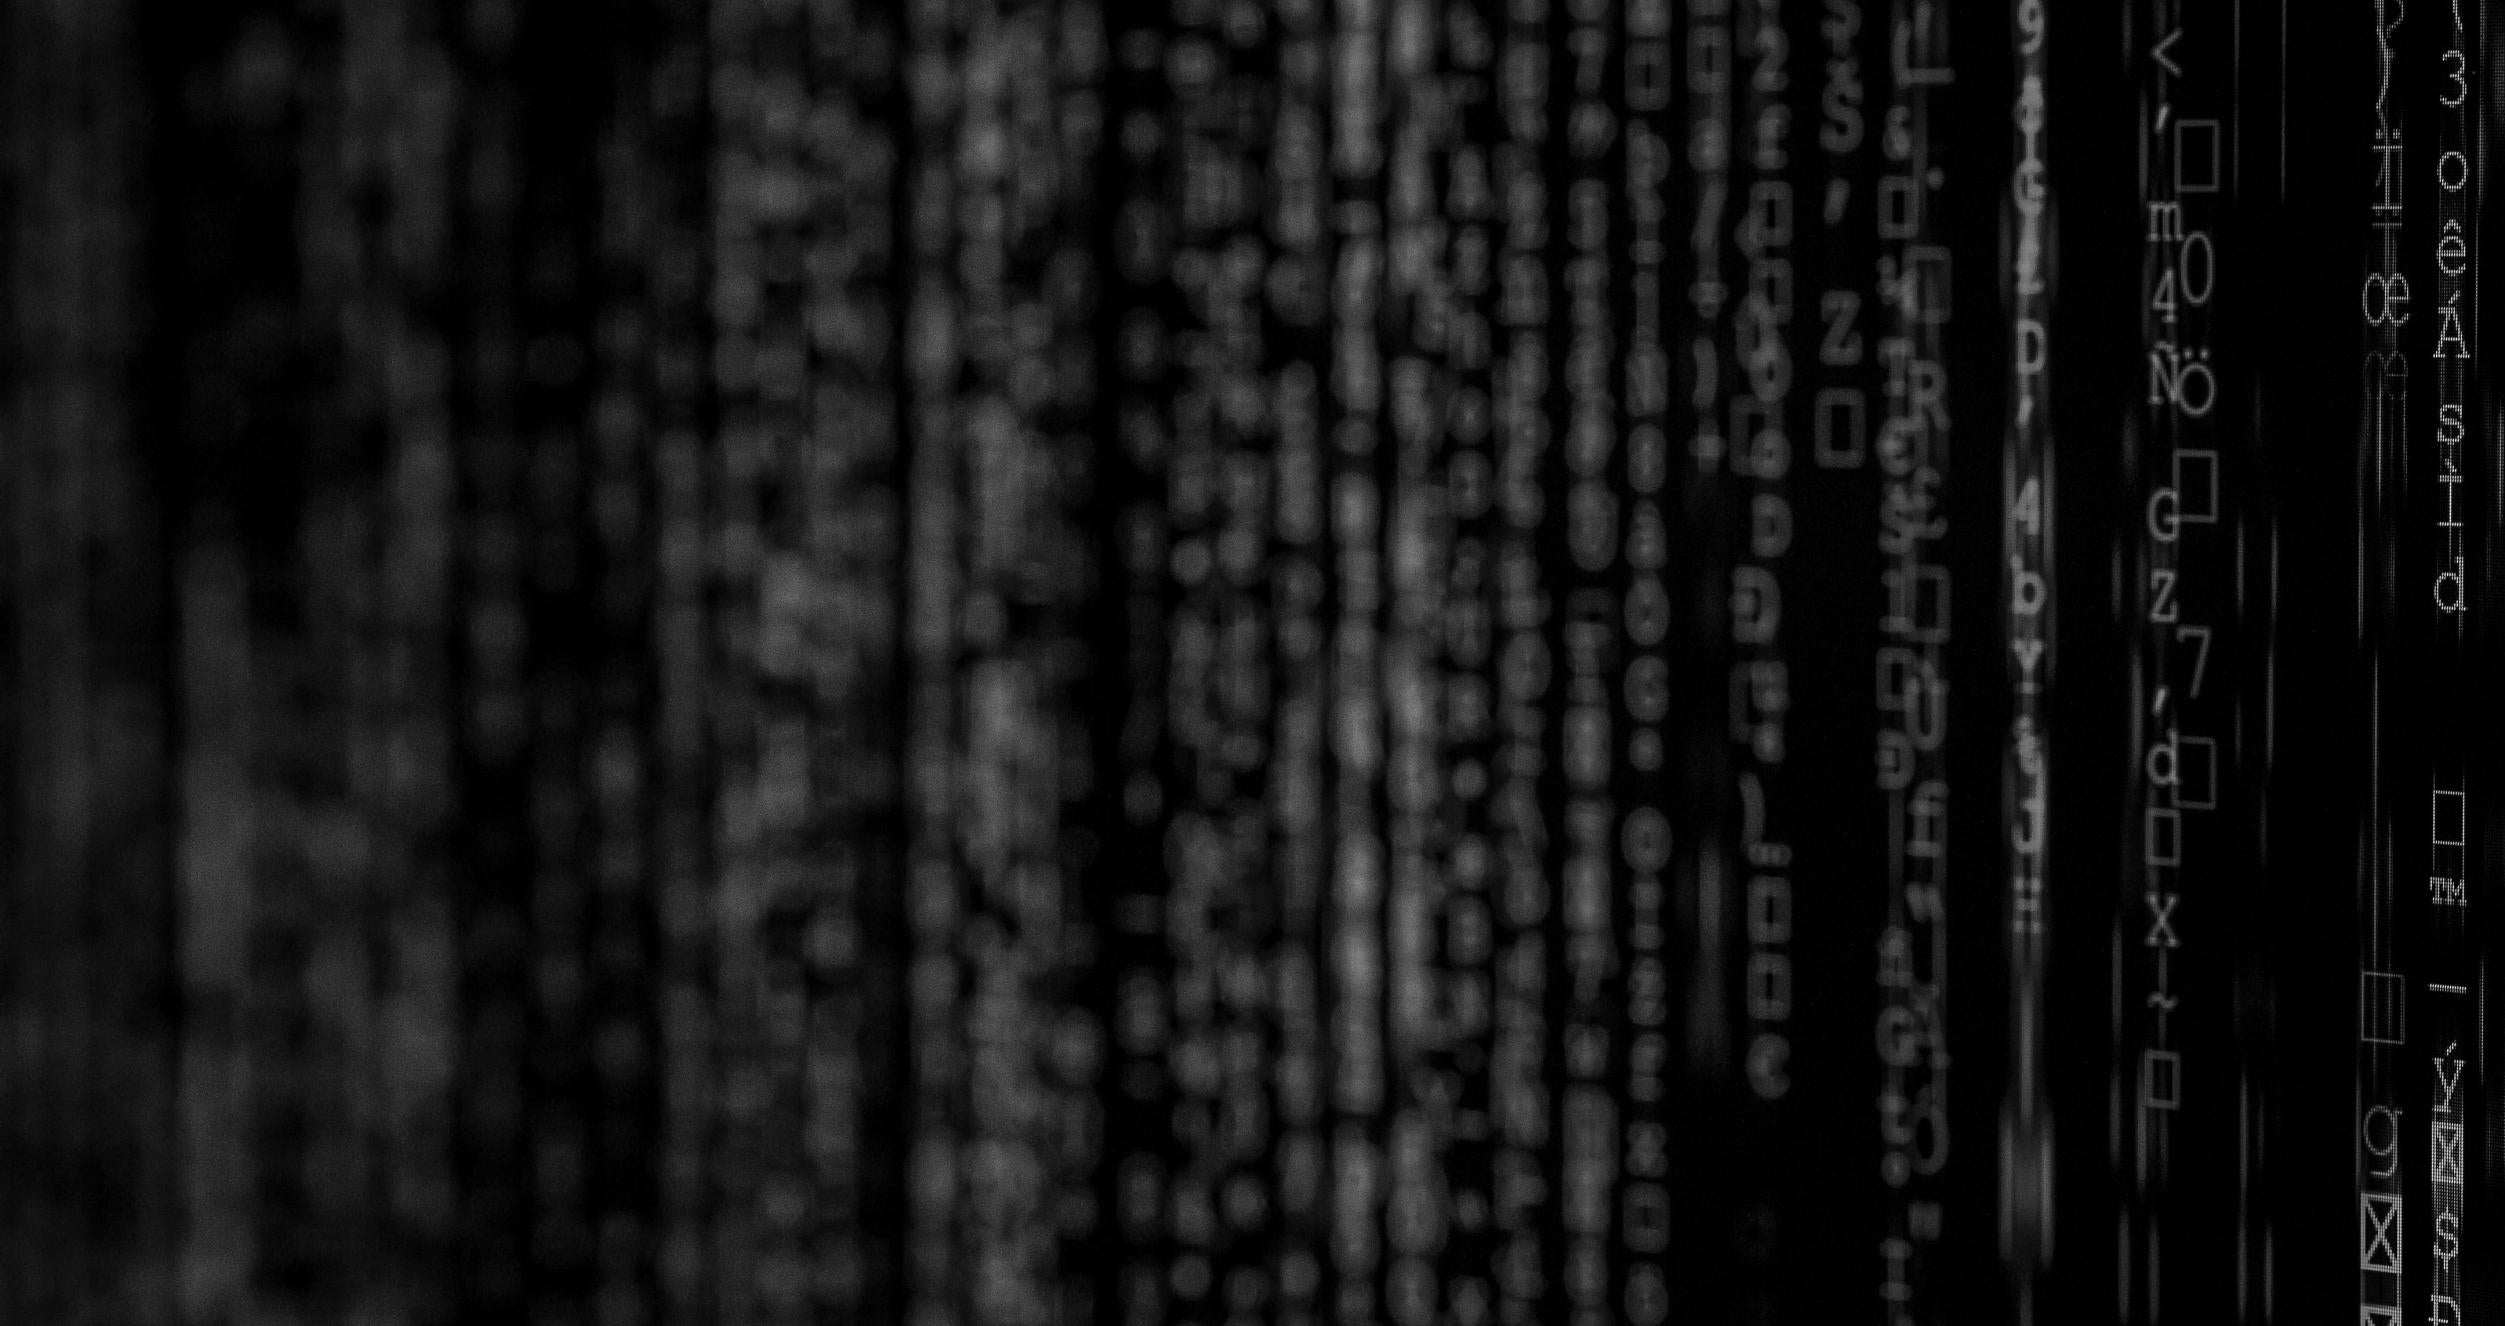 Abstract image of black screen with white code